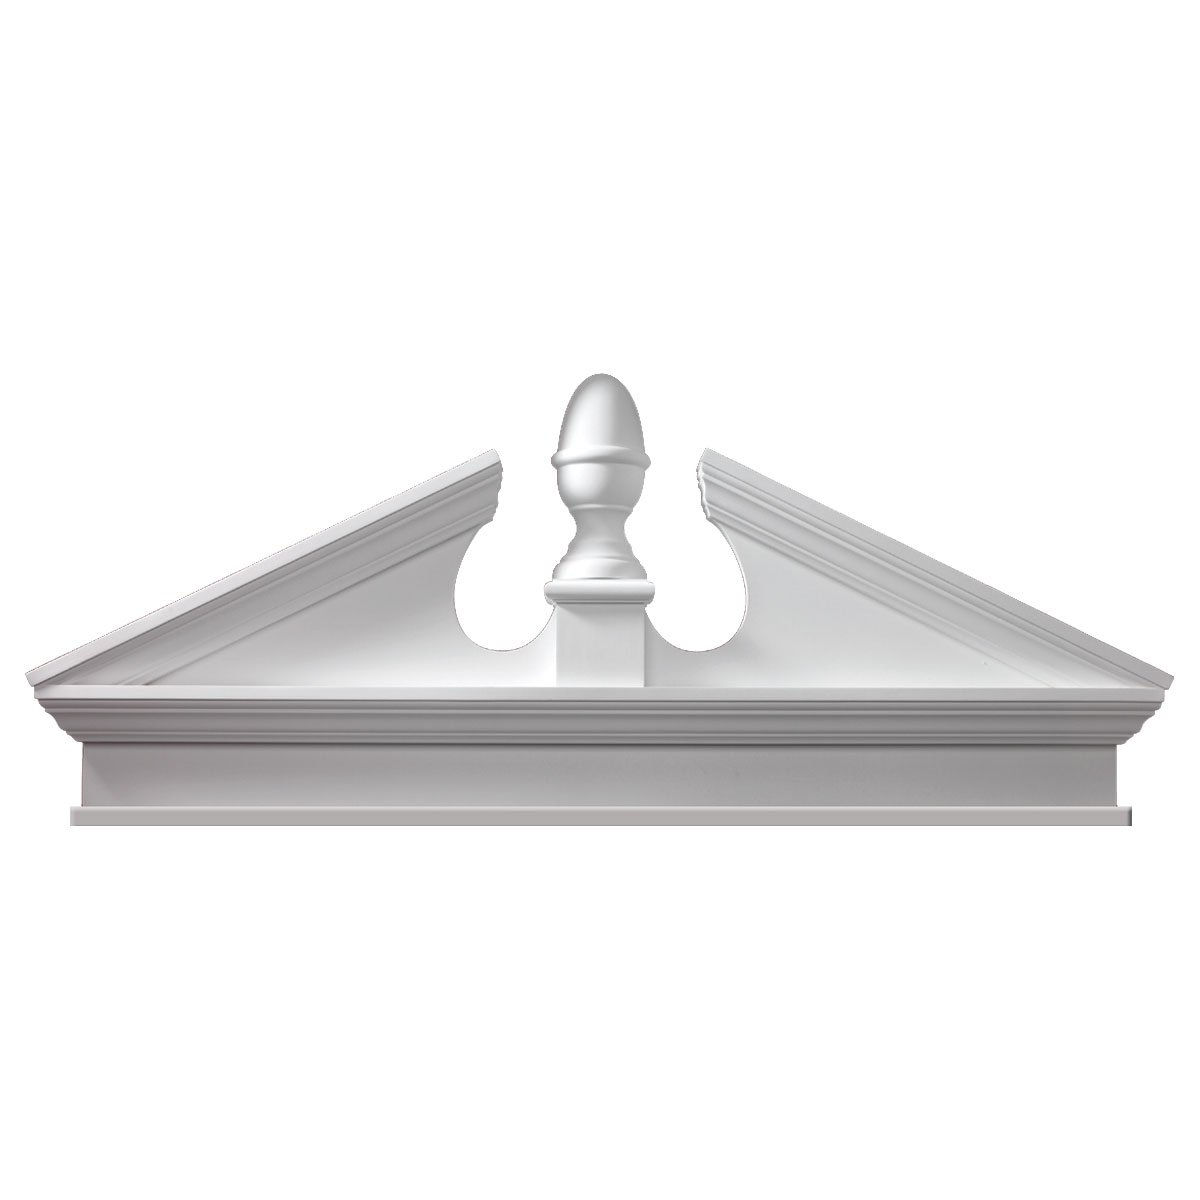 Fypon CAP75BT 75''W x 79 1/2''OW x 26 1/8''H x 3 1/8''P, Pitch 6/12 Combination Acorn Pediment, Urethane